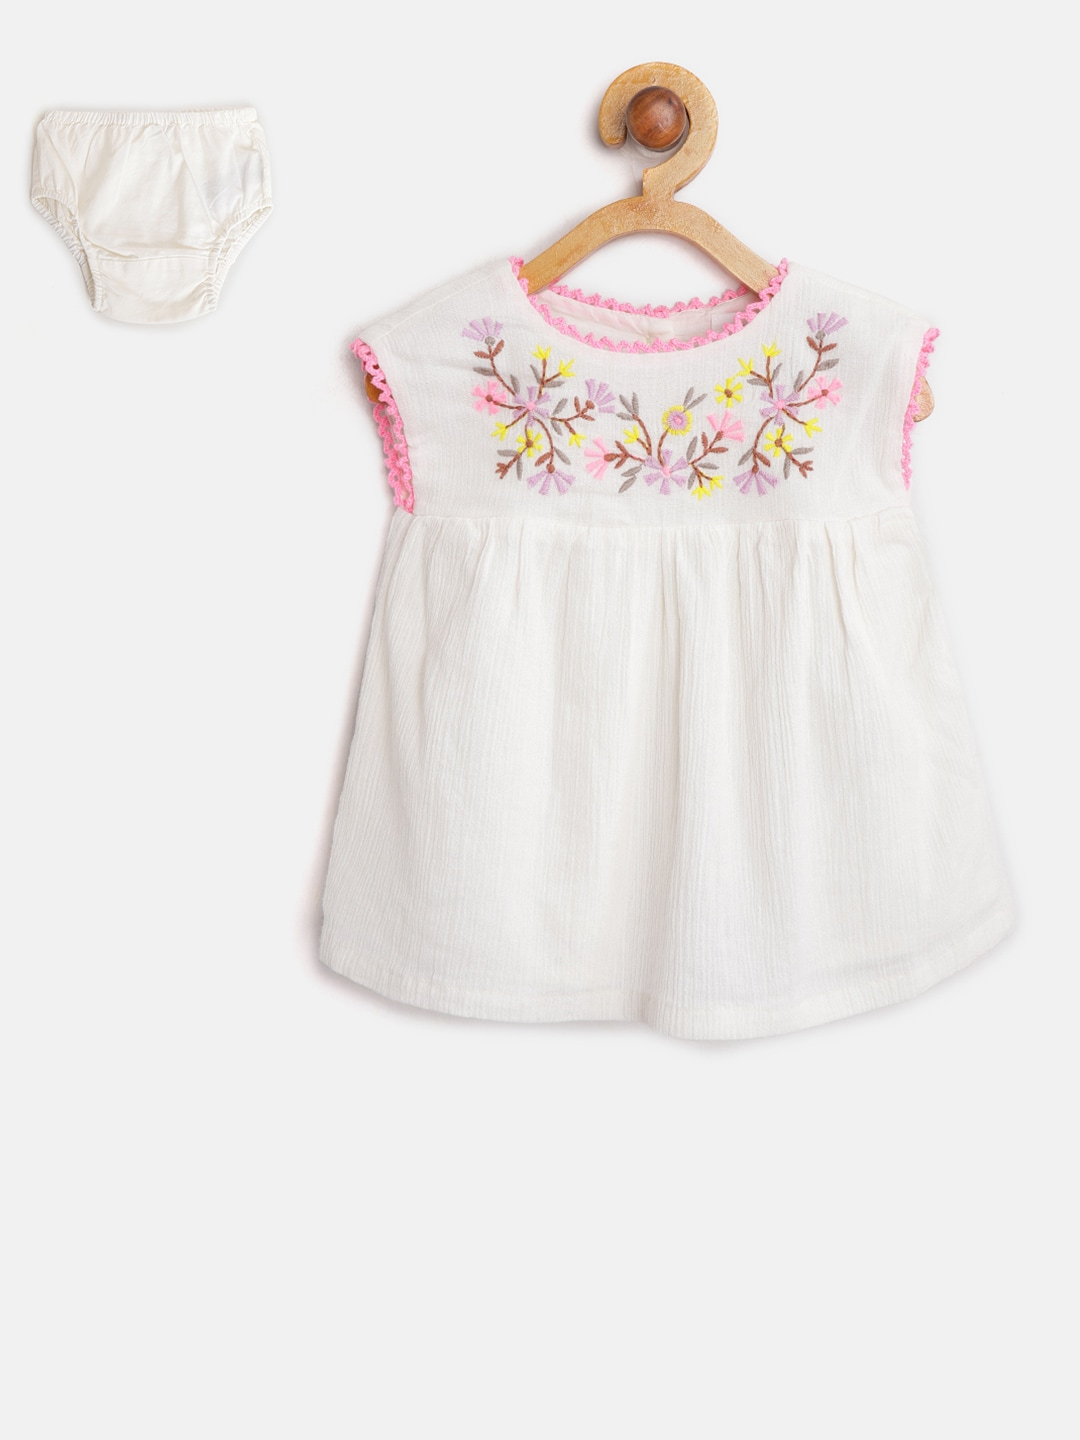 9723be1c3534 ... italy baby girls dresses buy dresses for baby girl online in india  3638b b8ac2